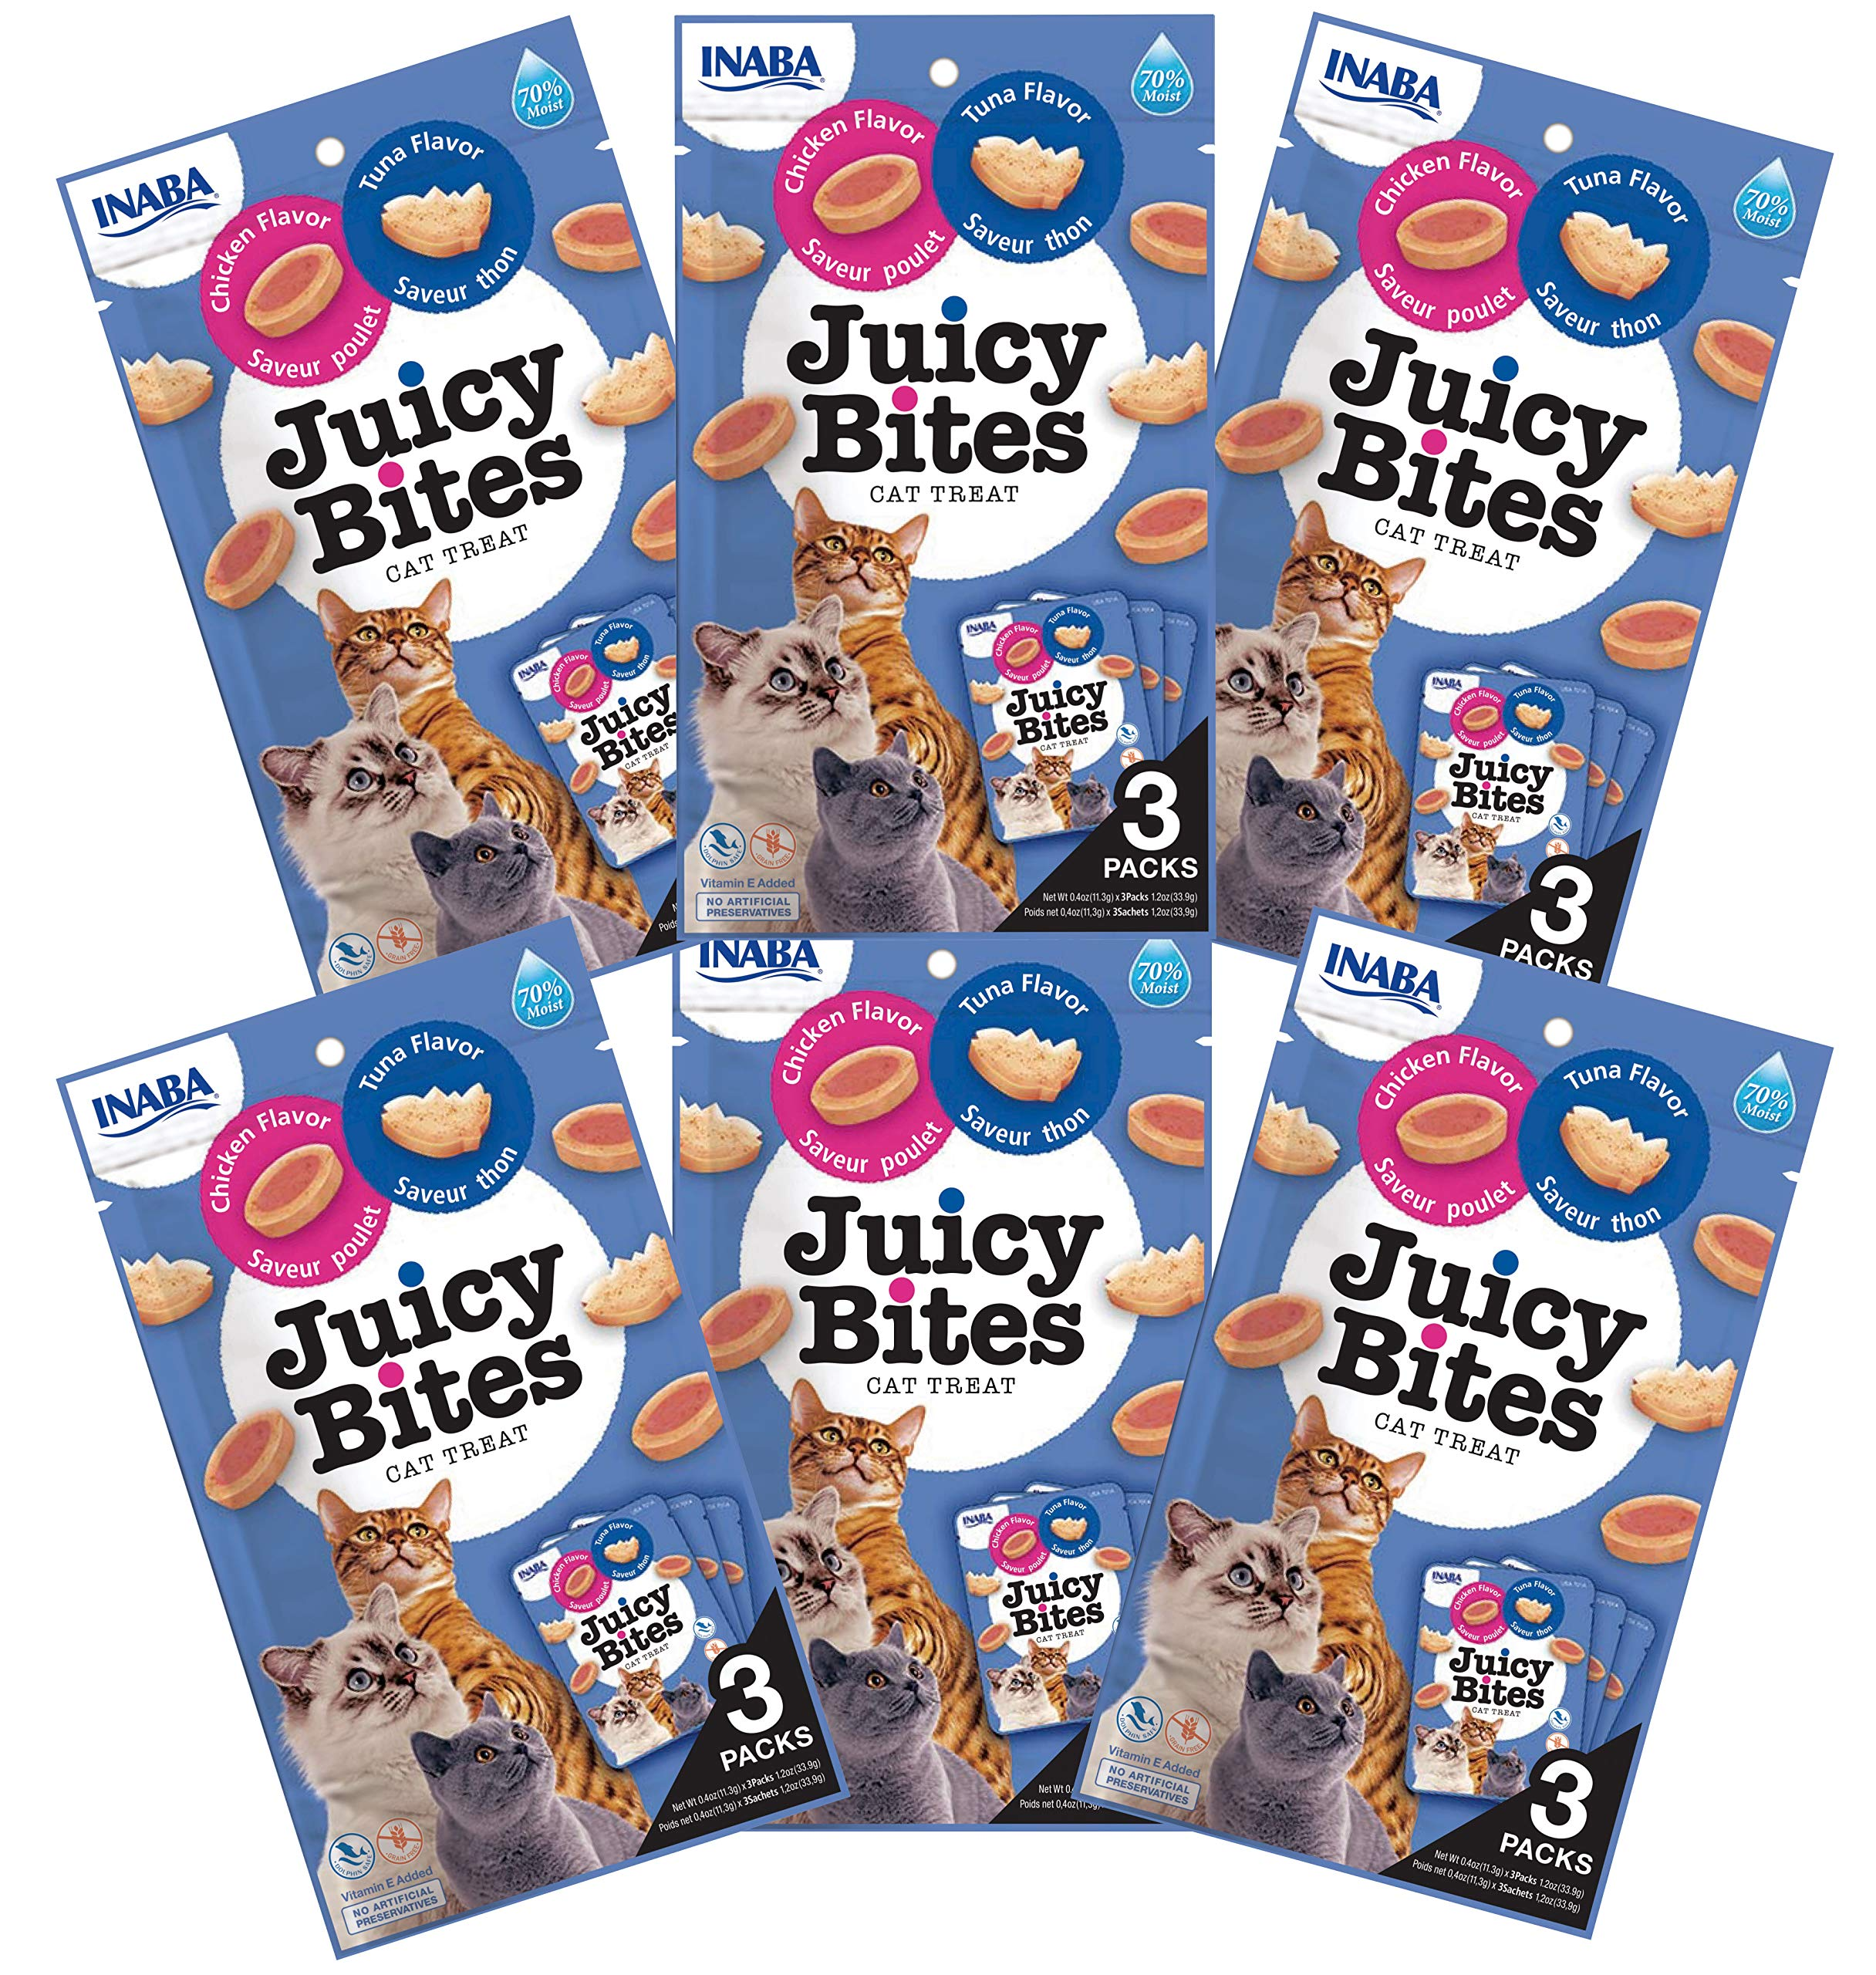 INABA Juicy Bites Tuna and Chicken Flavor Cat Treats 18pk by INABA